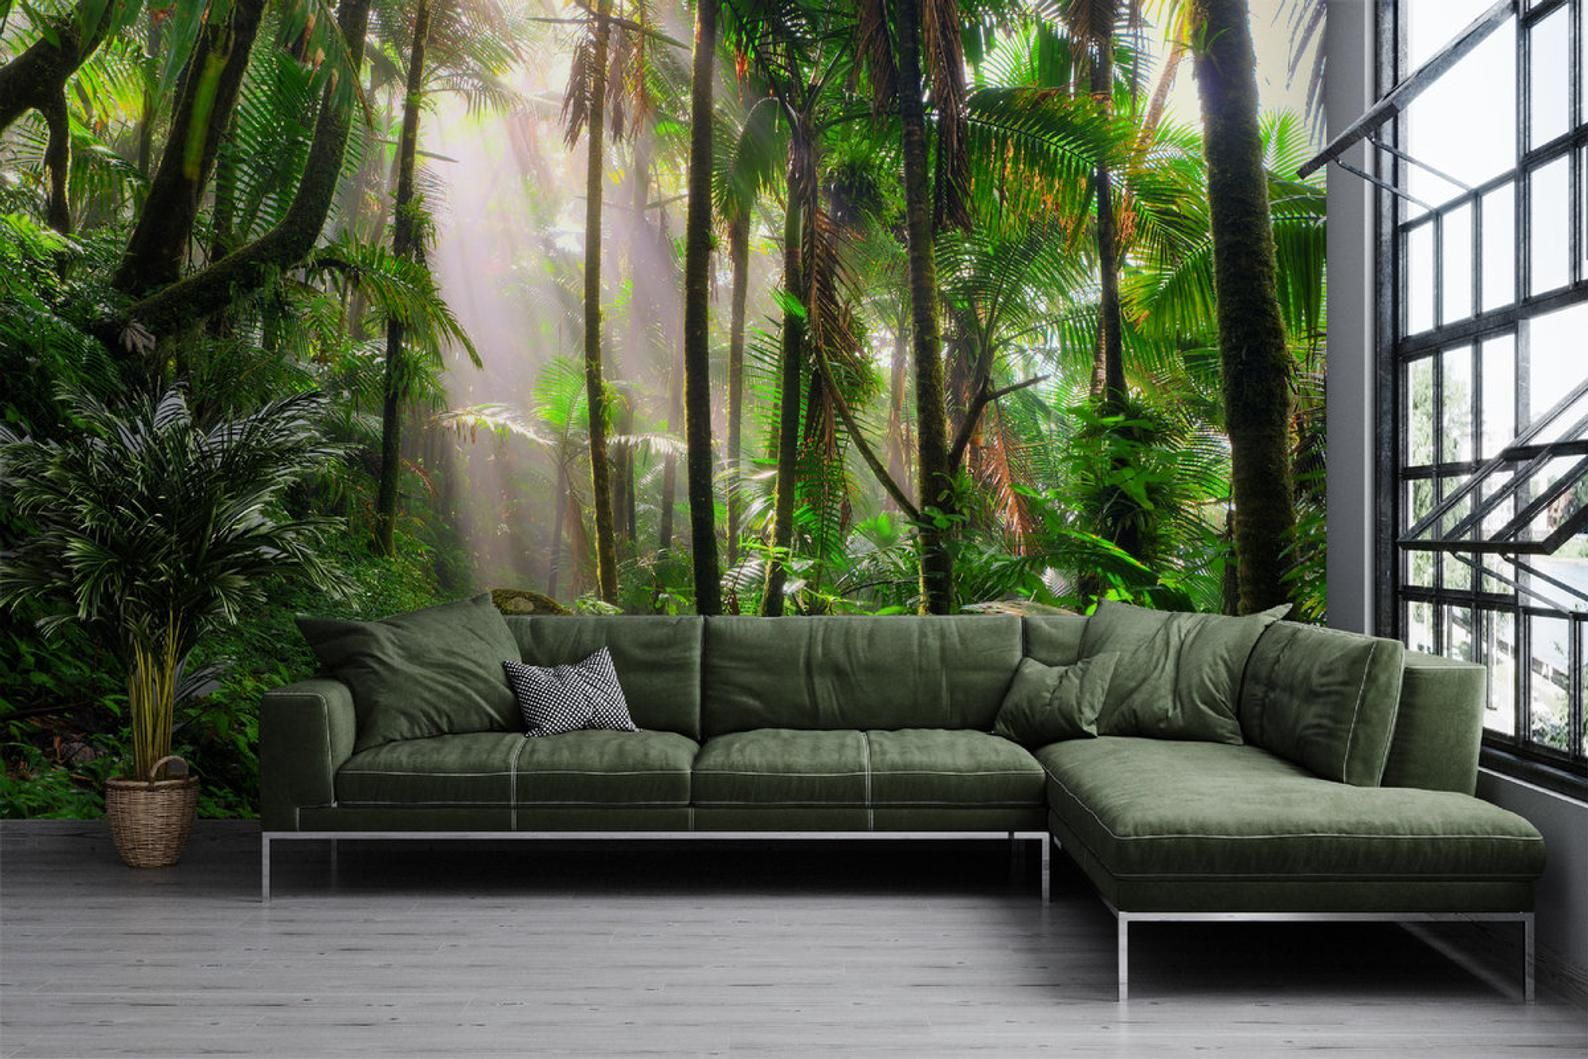 Forest Wallpaper Peel and Stick Tropical Forest Wall Mural